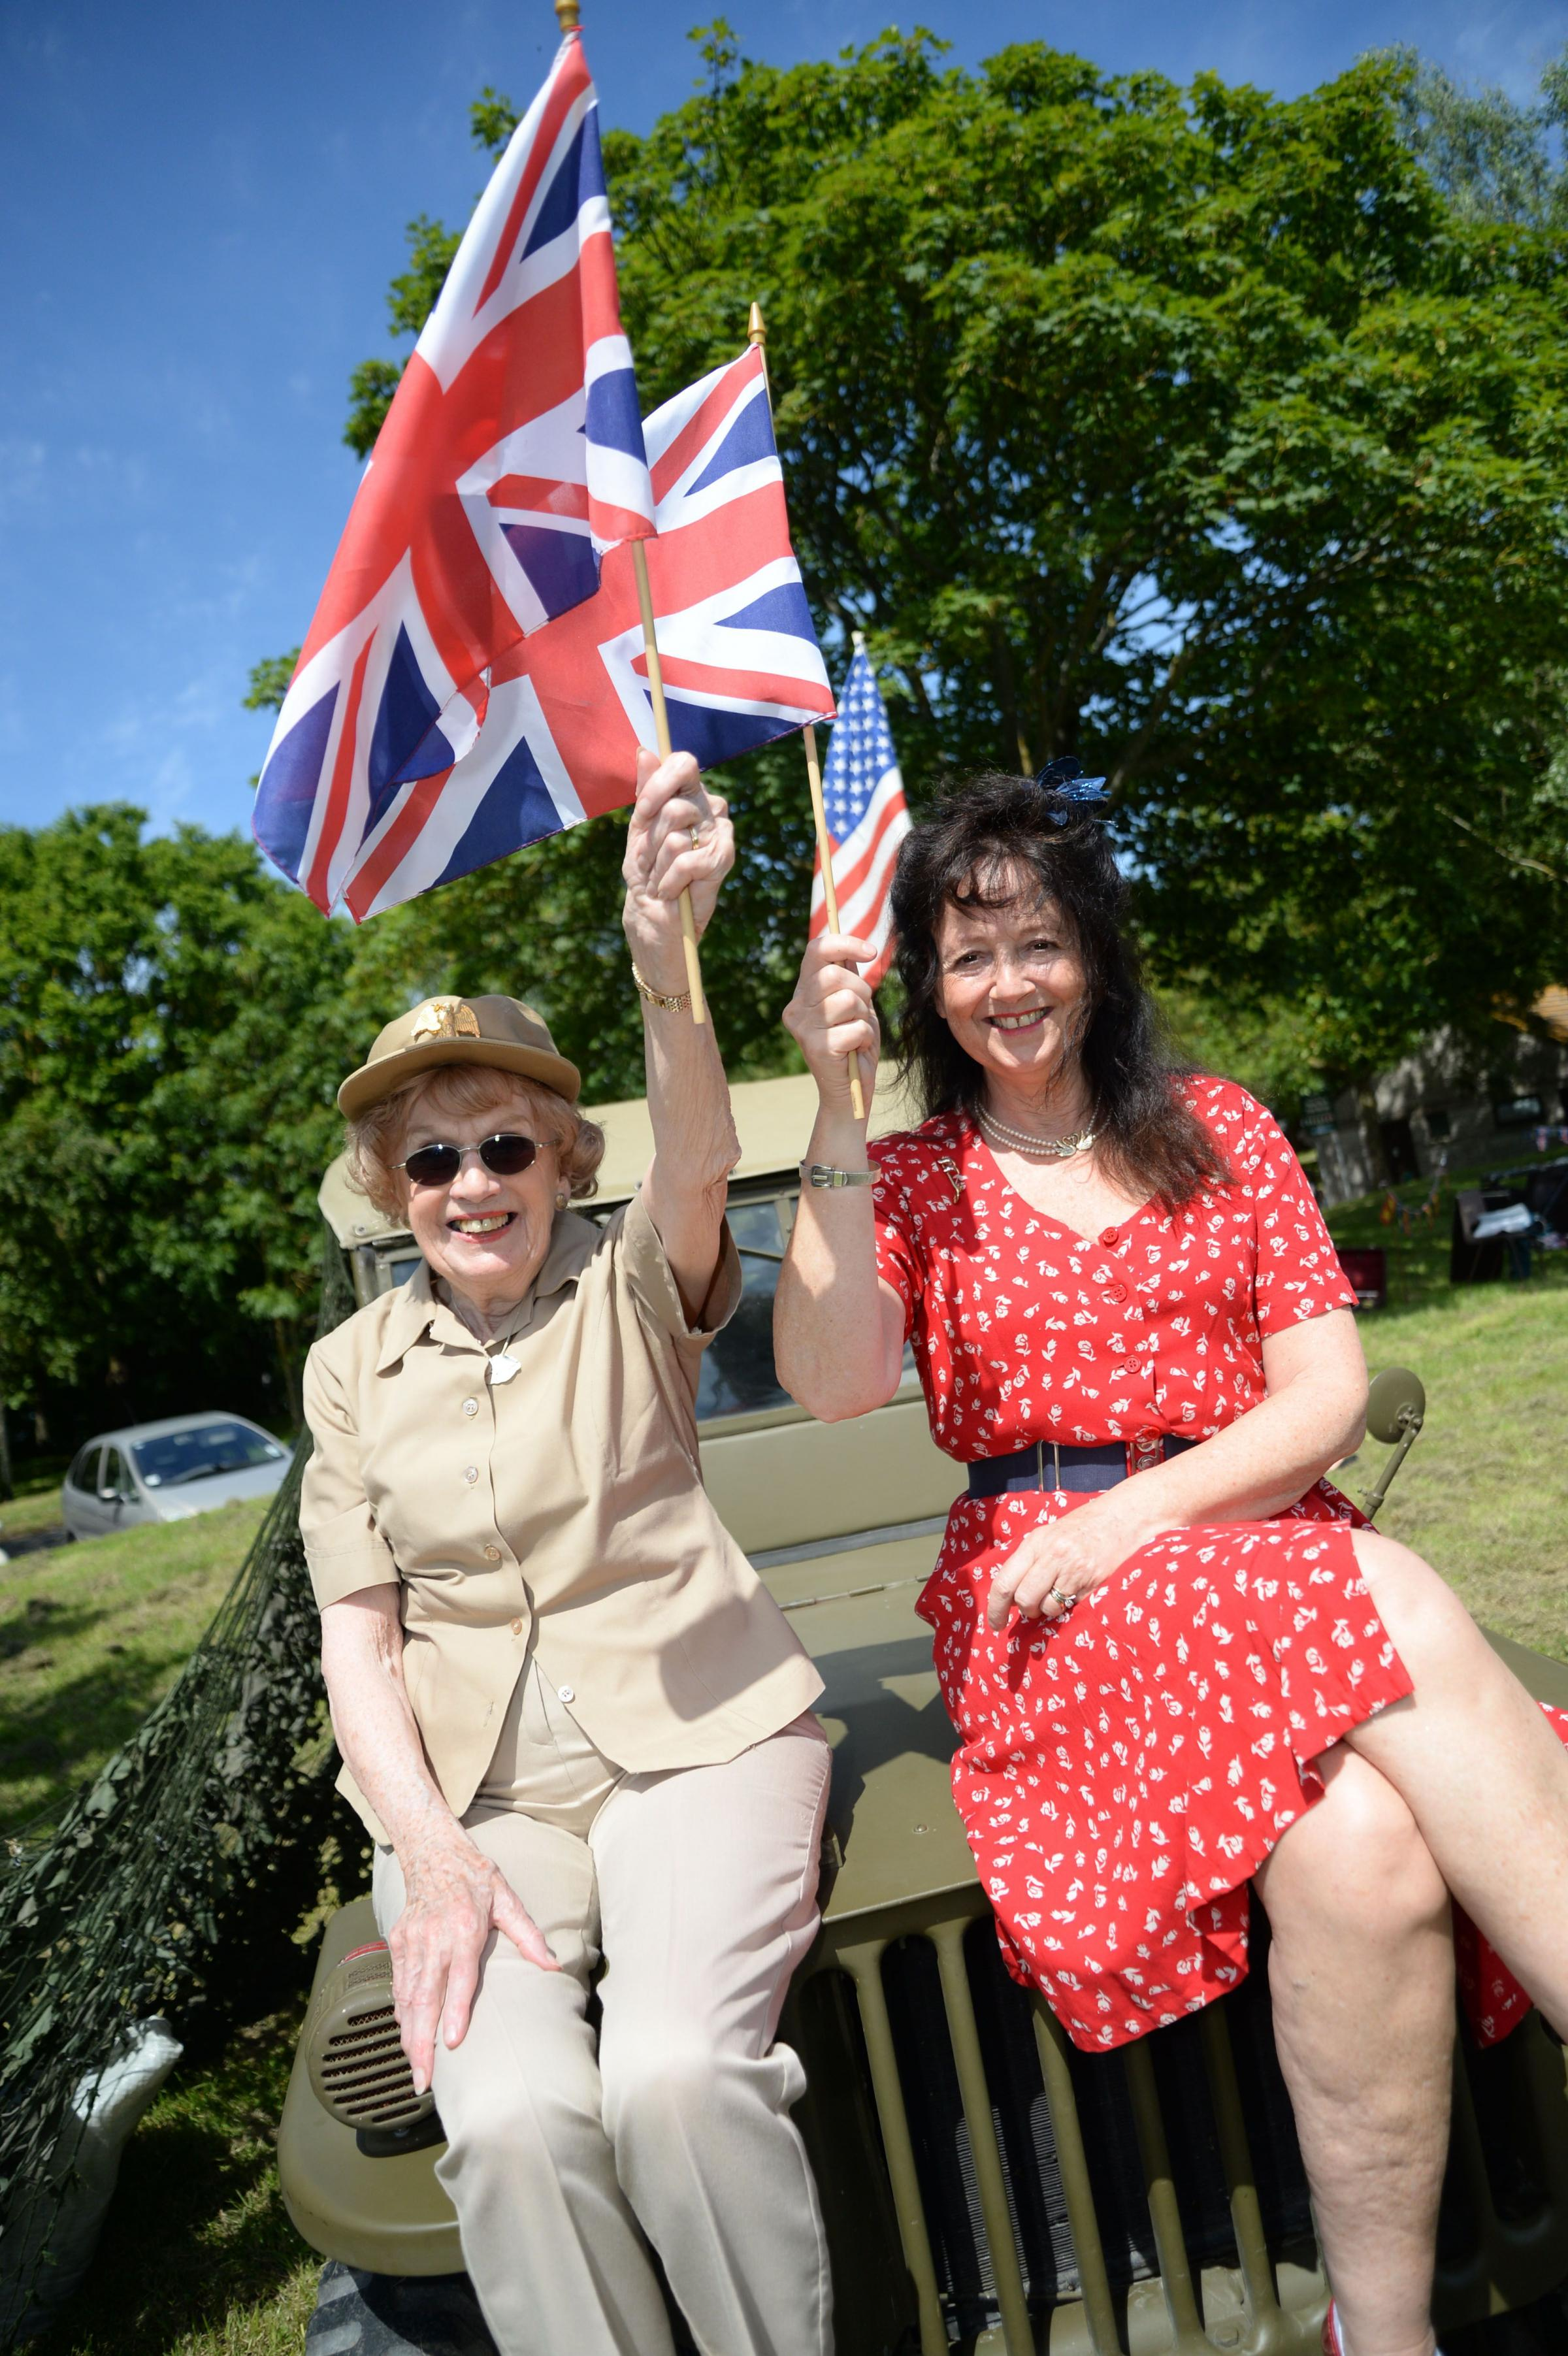 WITH VIDEO: Fun in the sun to commemorate D-Day